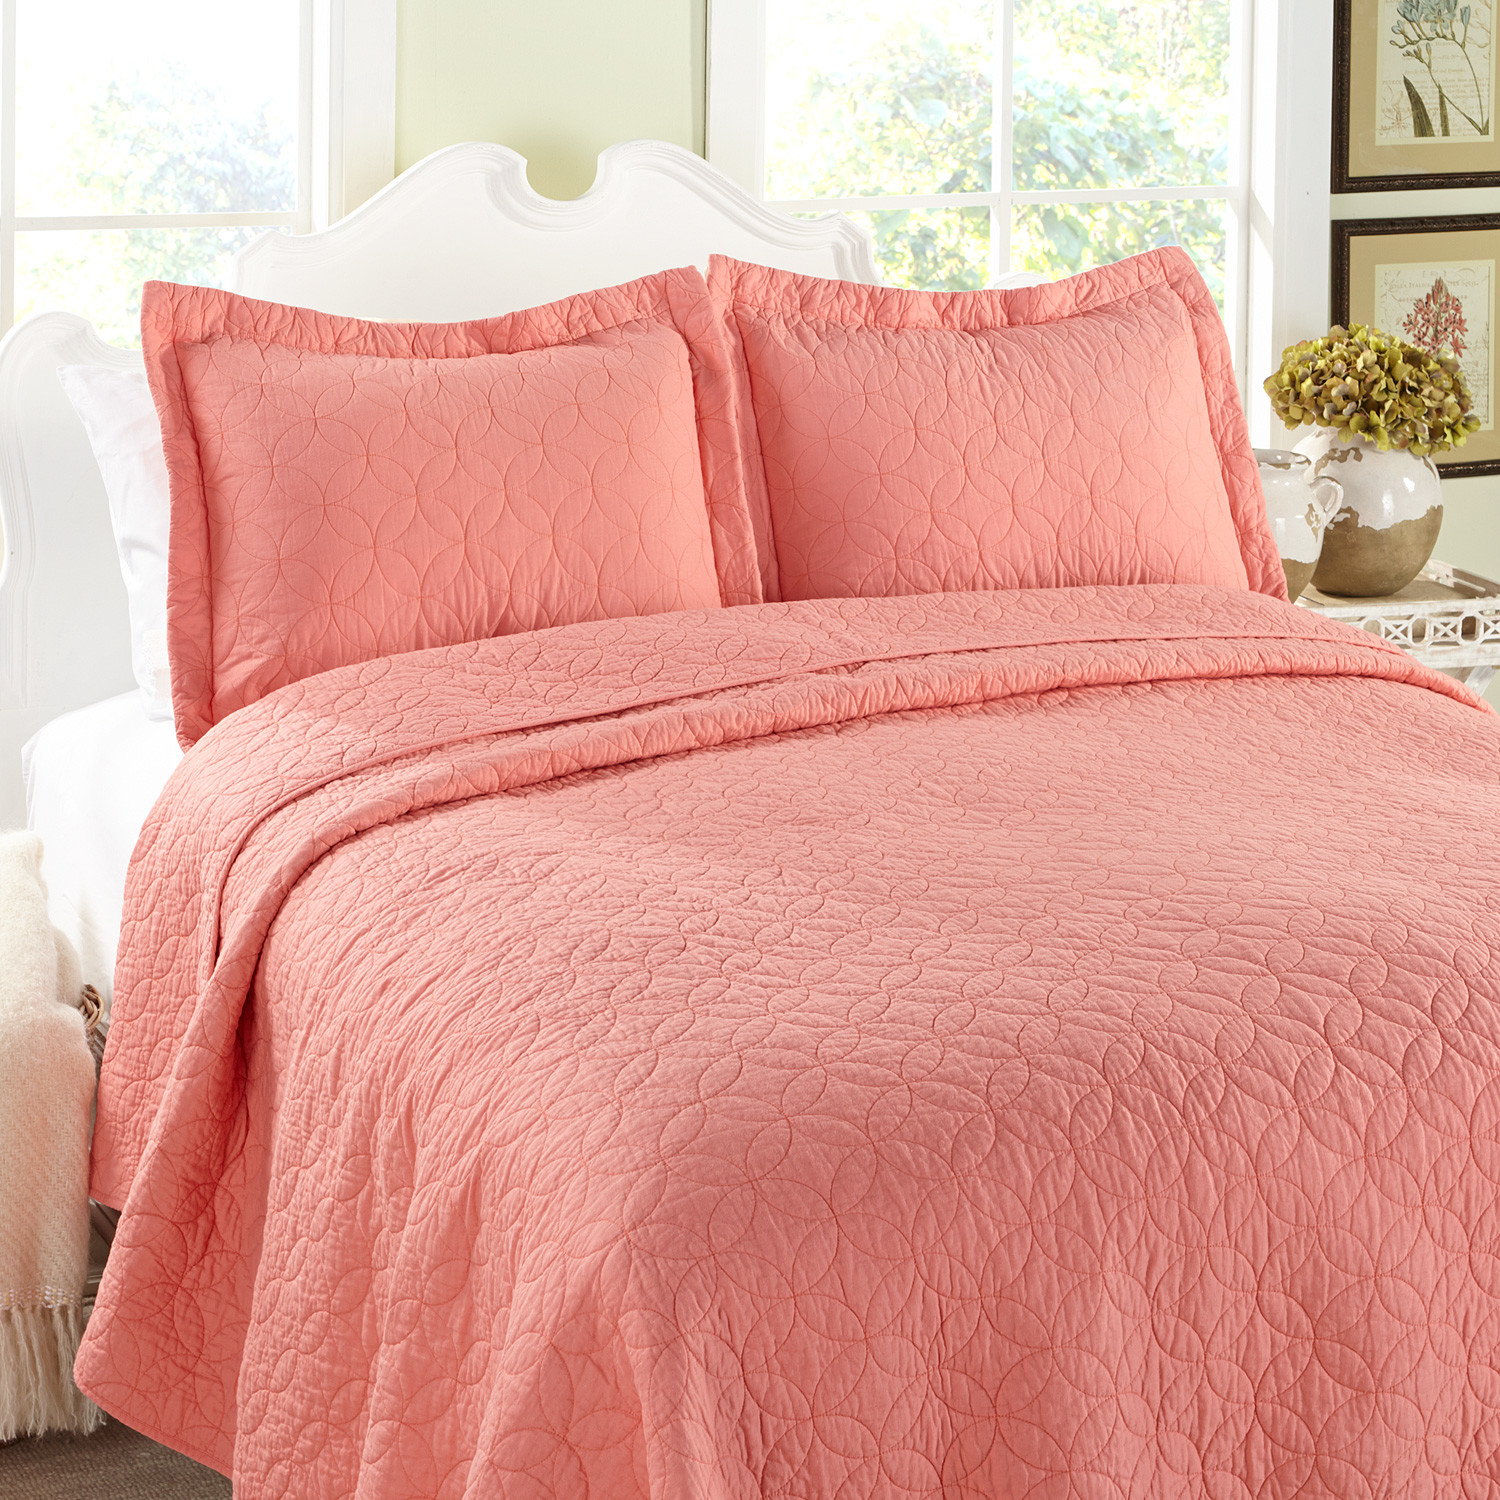 Best Sources for Organic Cotton Bed Sheets - HomesFeed